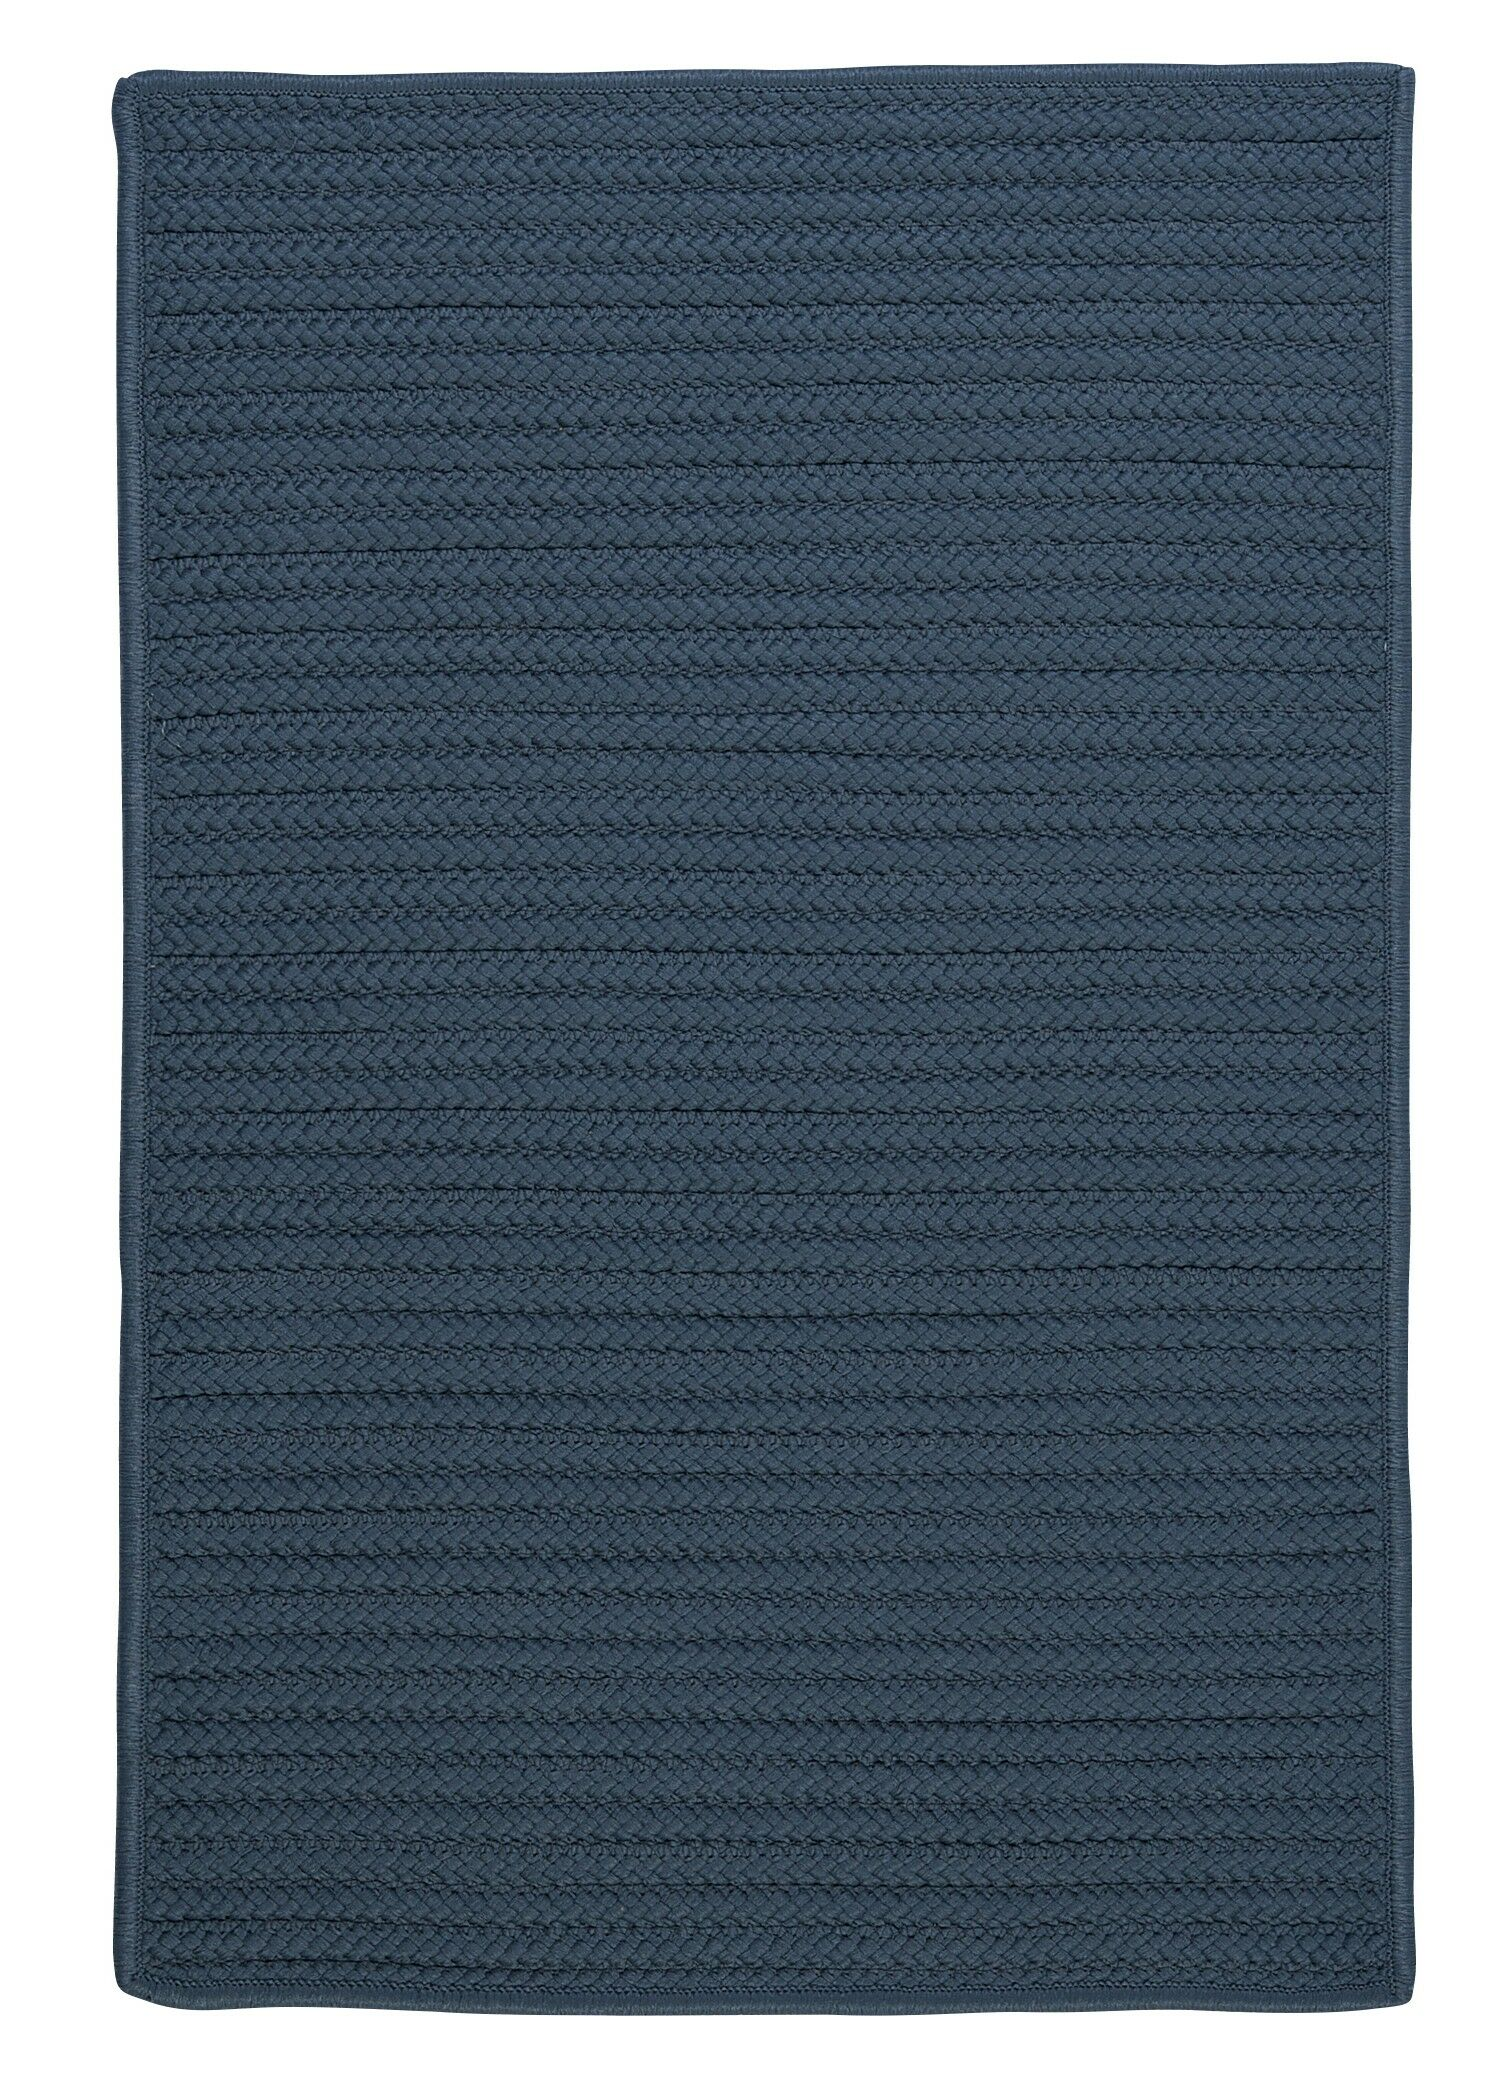 Glasgow Blue Indoor/Outdoor Area Rug Rug Size: Square 10'